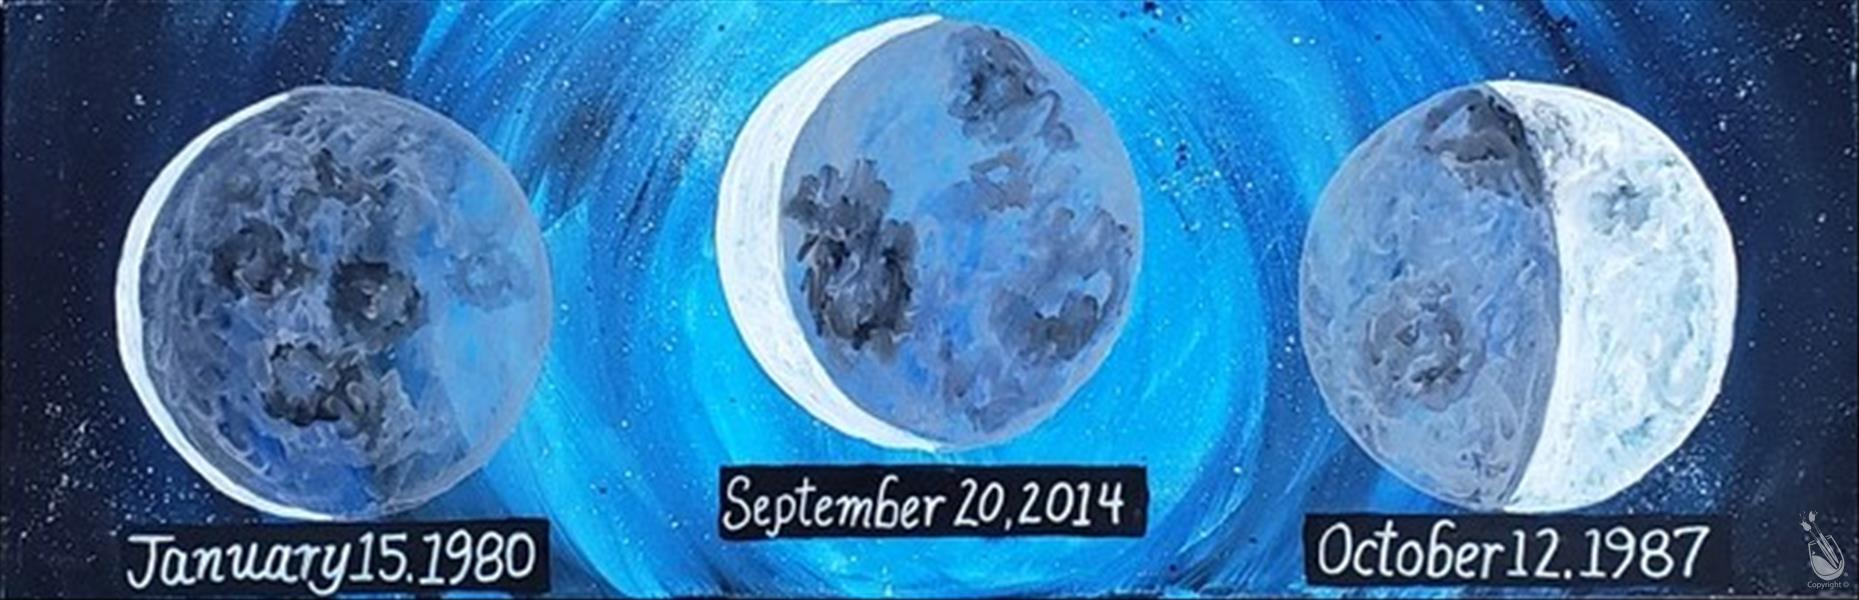 Your Dates - Moon Phase Calendar